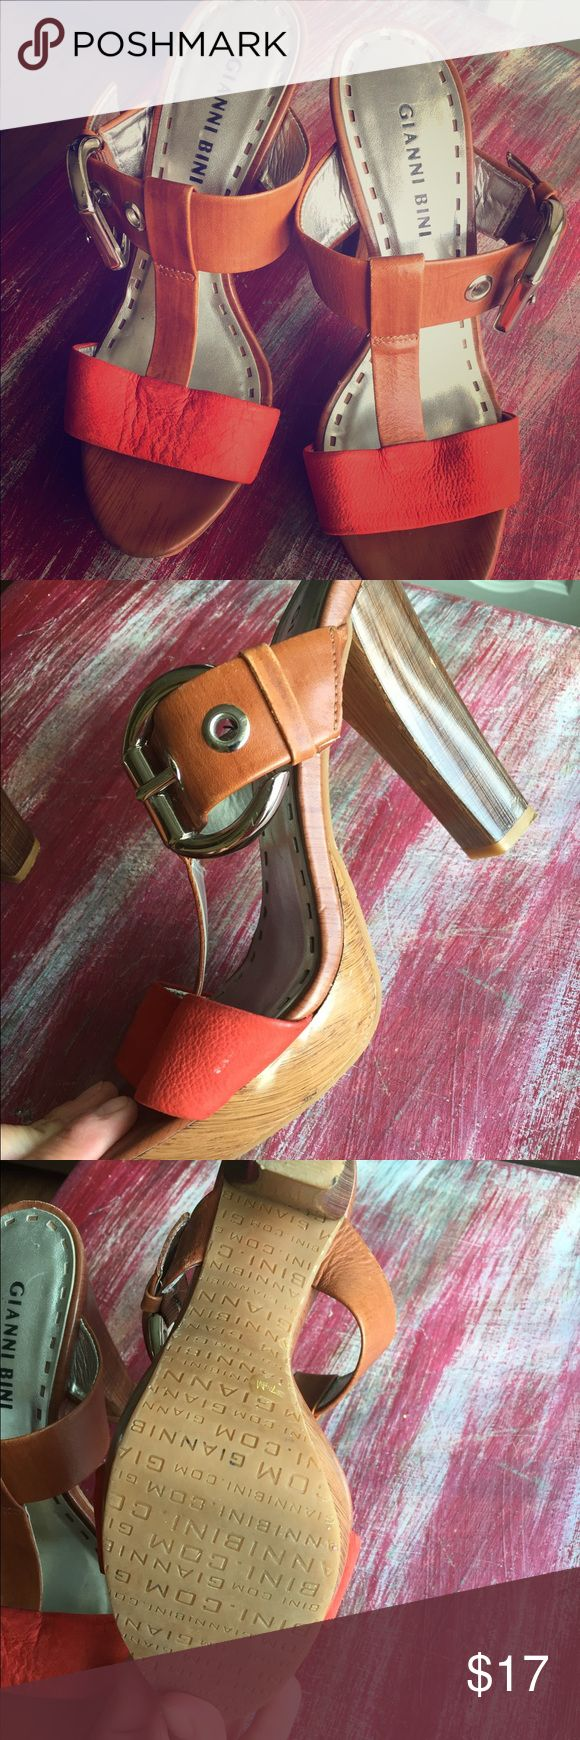 Gianni bini coral and brown strappy heels 7.5 Cute Gianni bini buckled heels! Gently worn twice but have just been kept in my closet! 7.5 Gianni Bini Shoes Heels